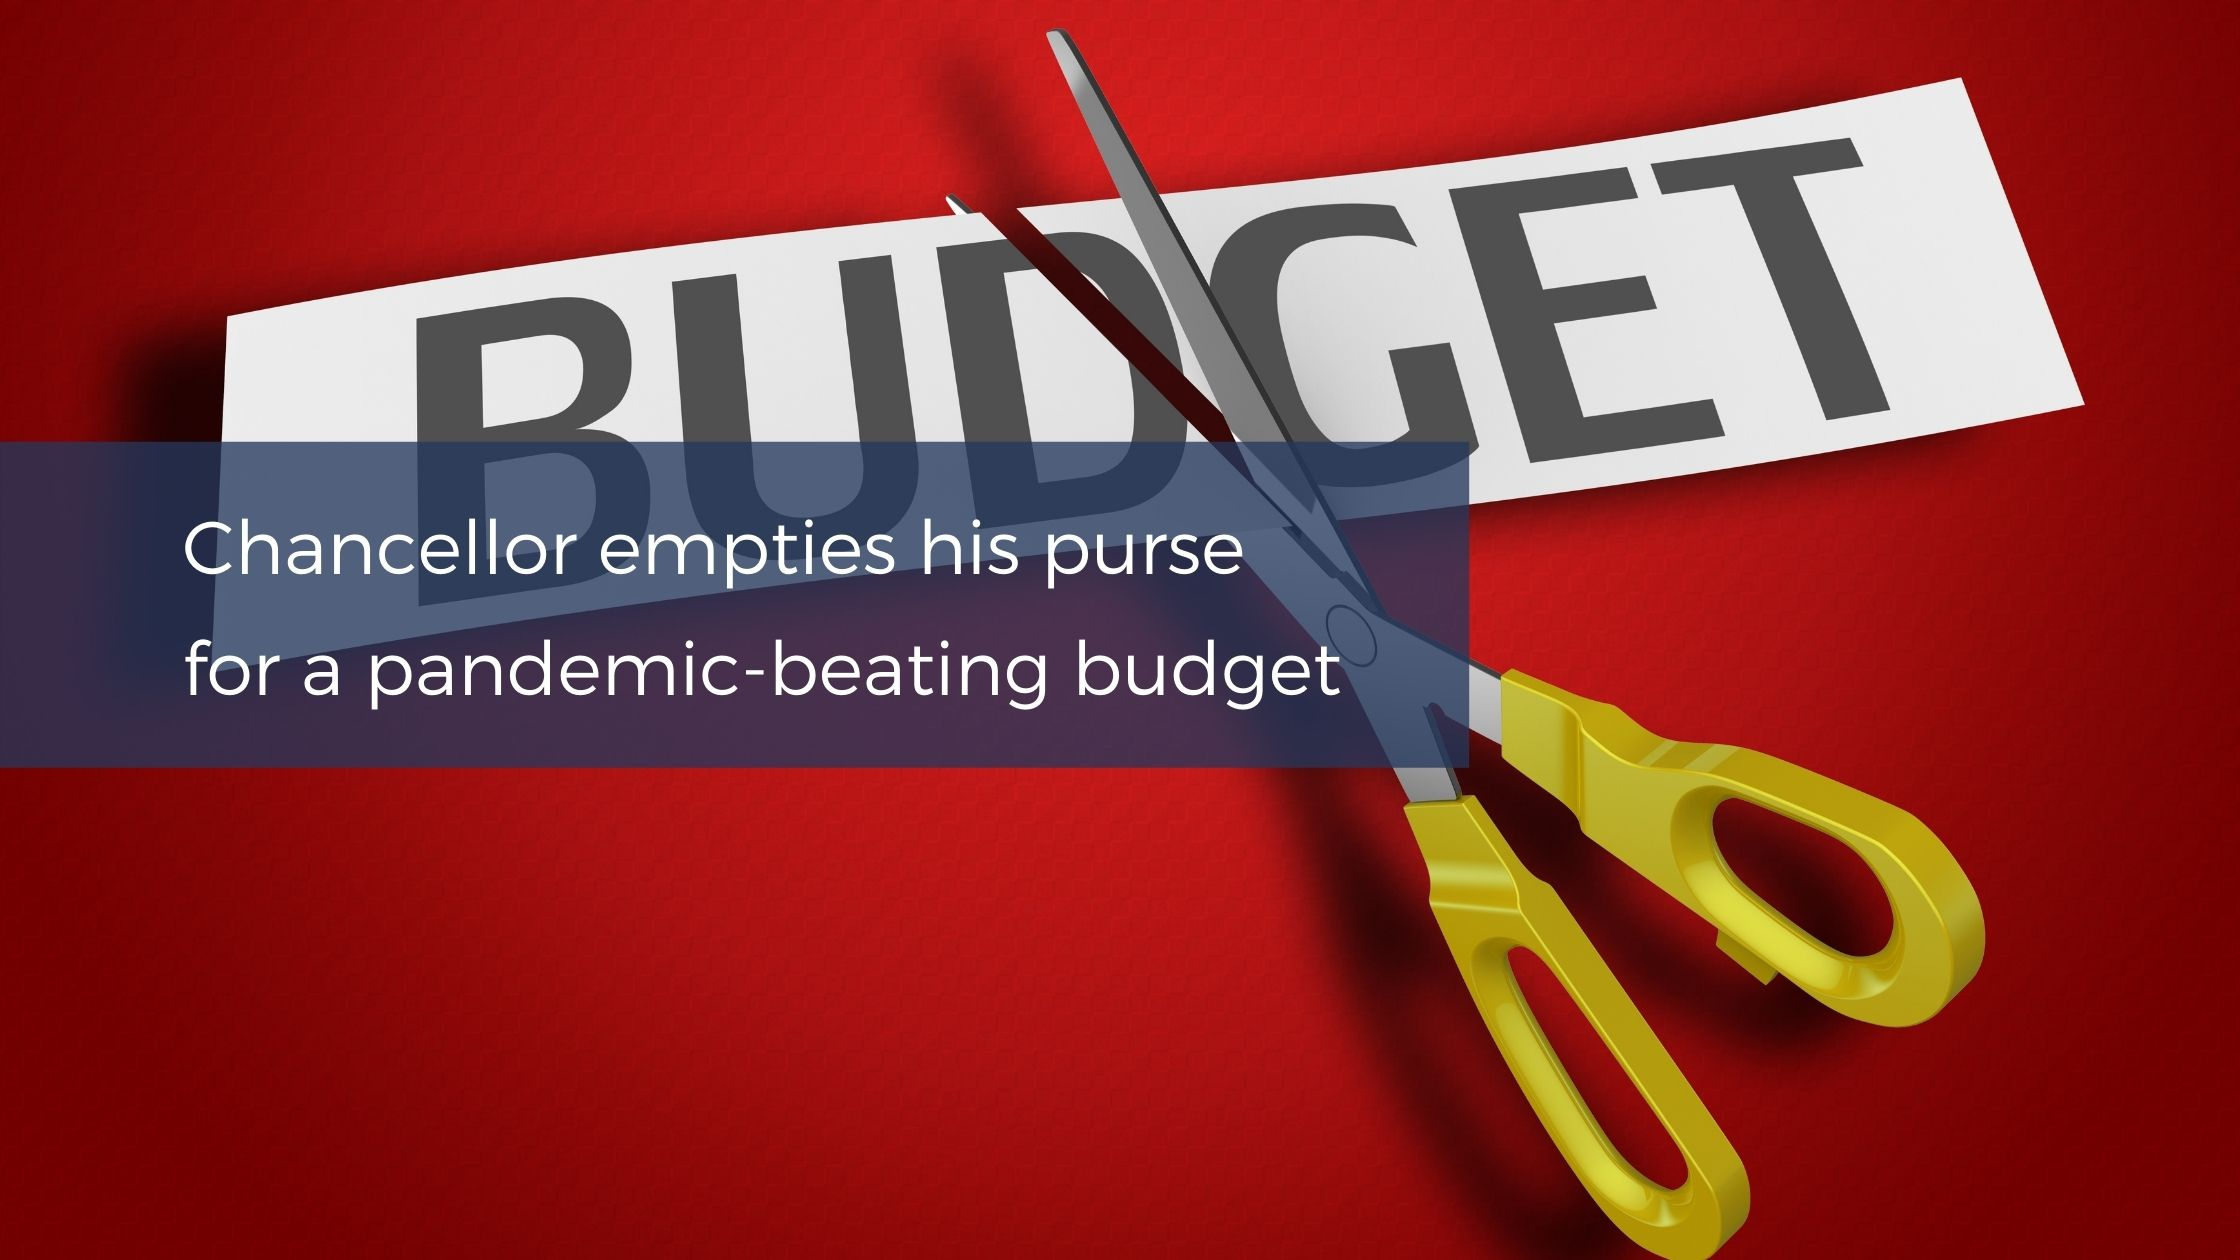 Chancellor empties his purse for a pandemic-beating budget